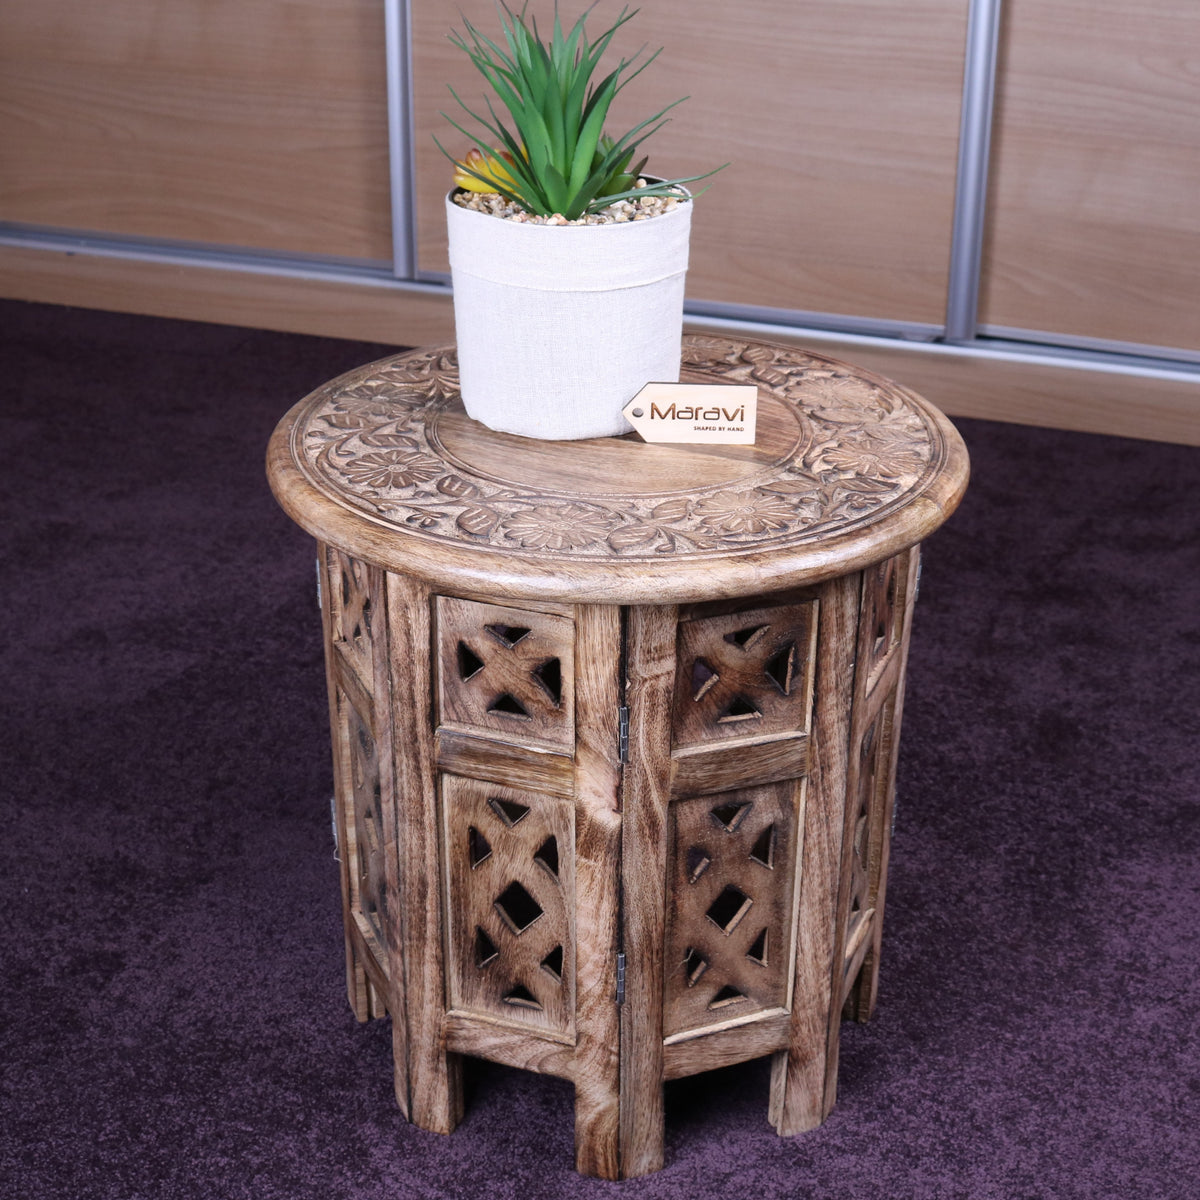 Ding 37cm Round Side Table Burnt Mango Wood